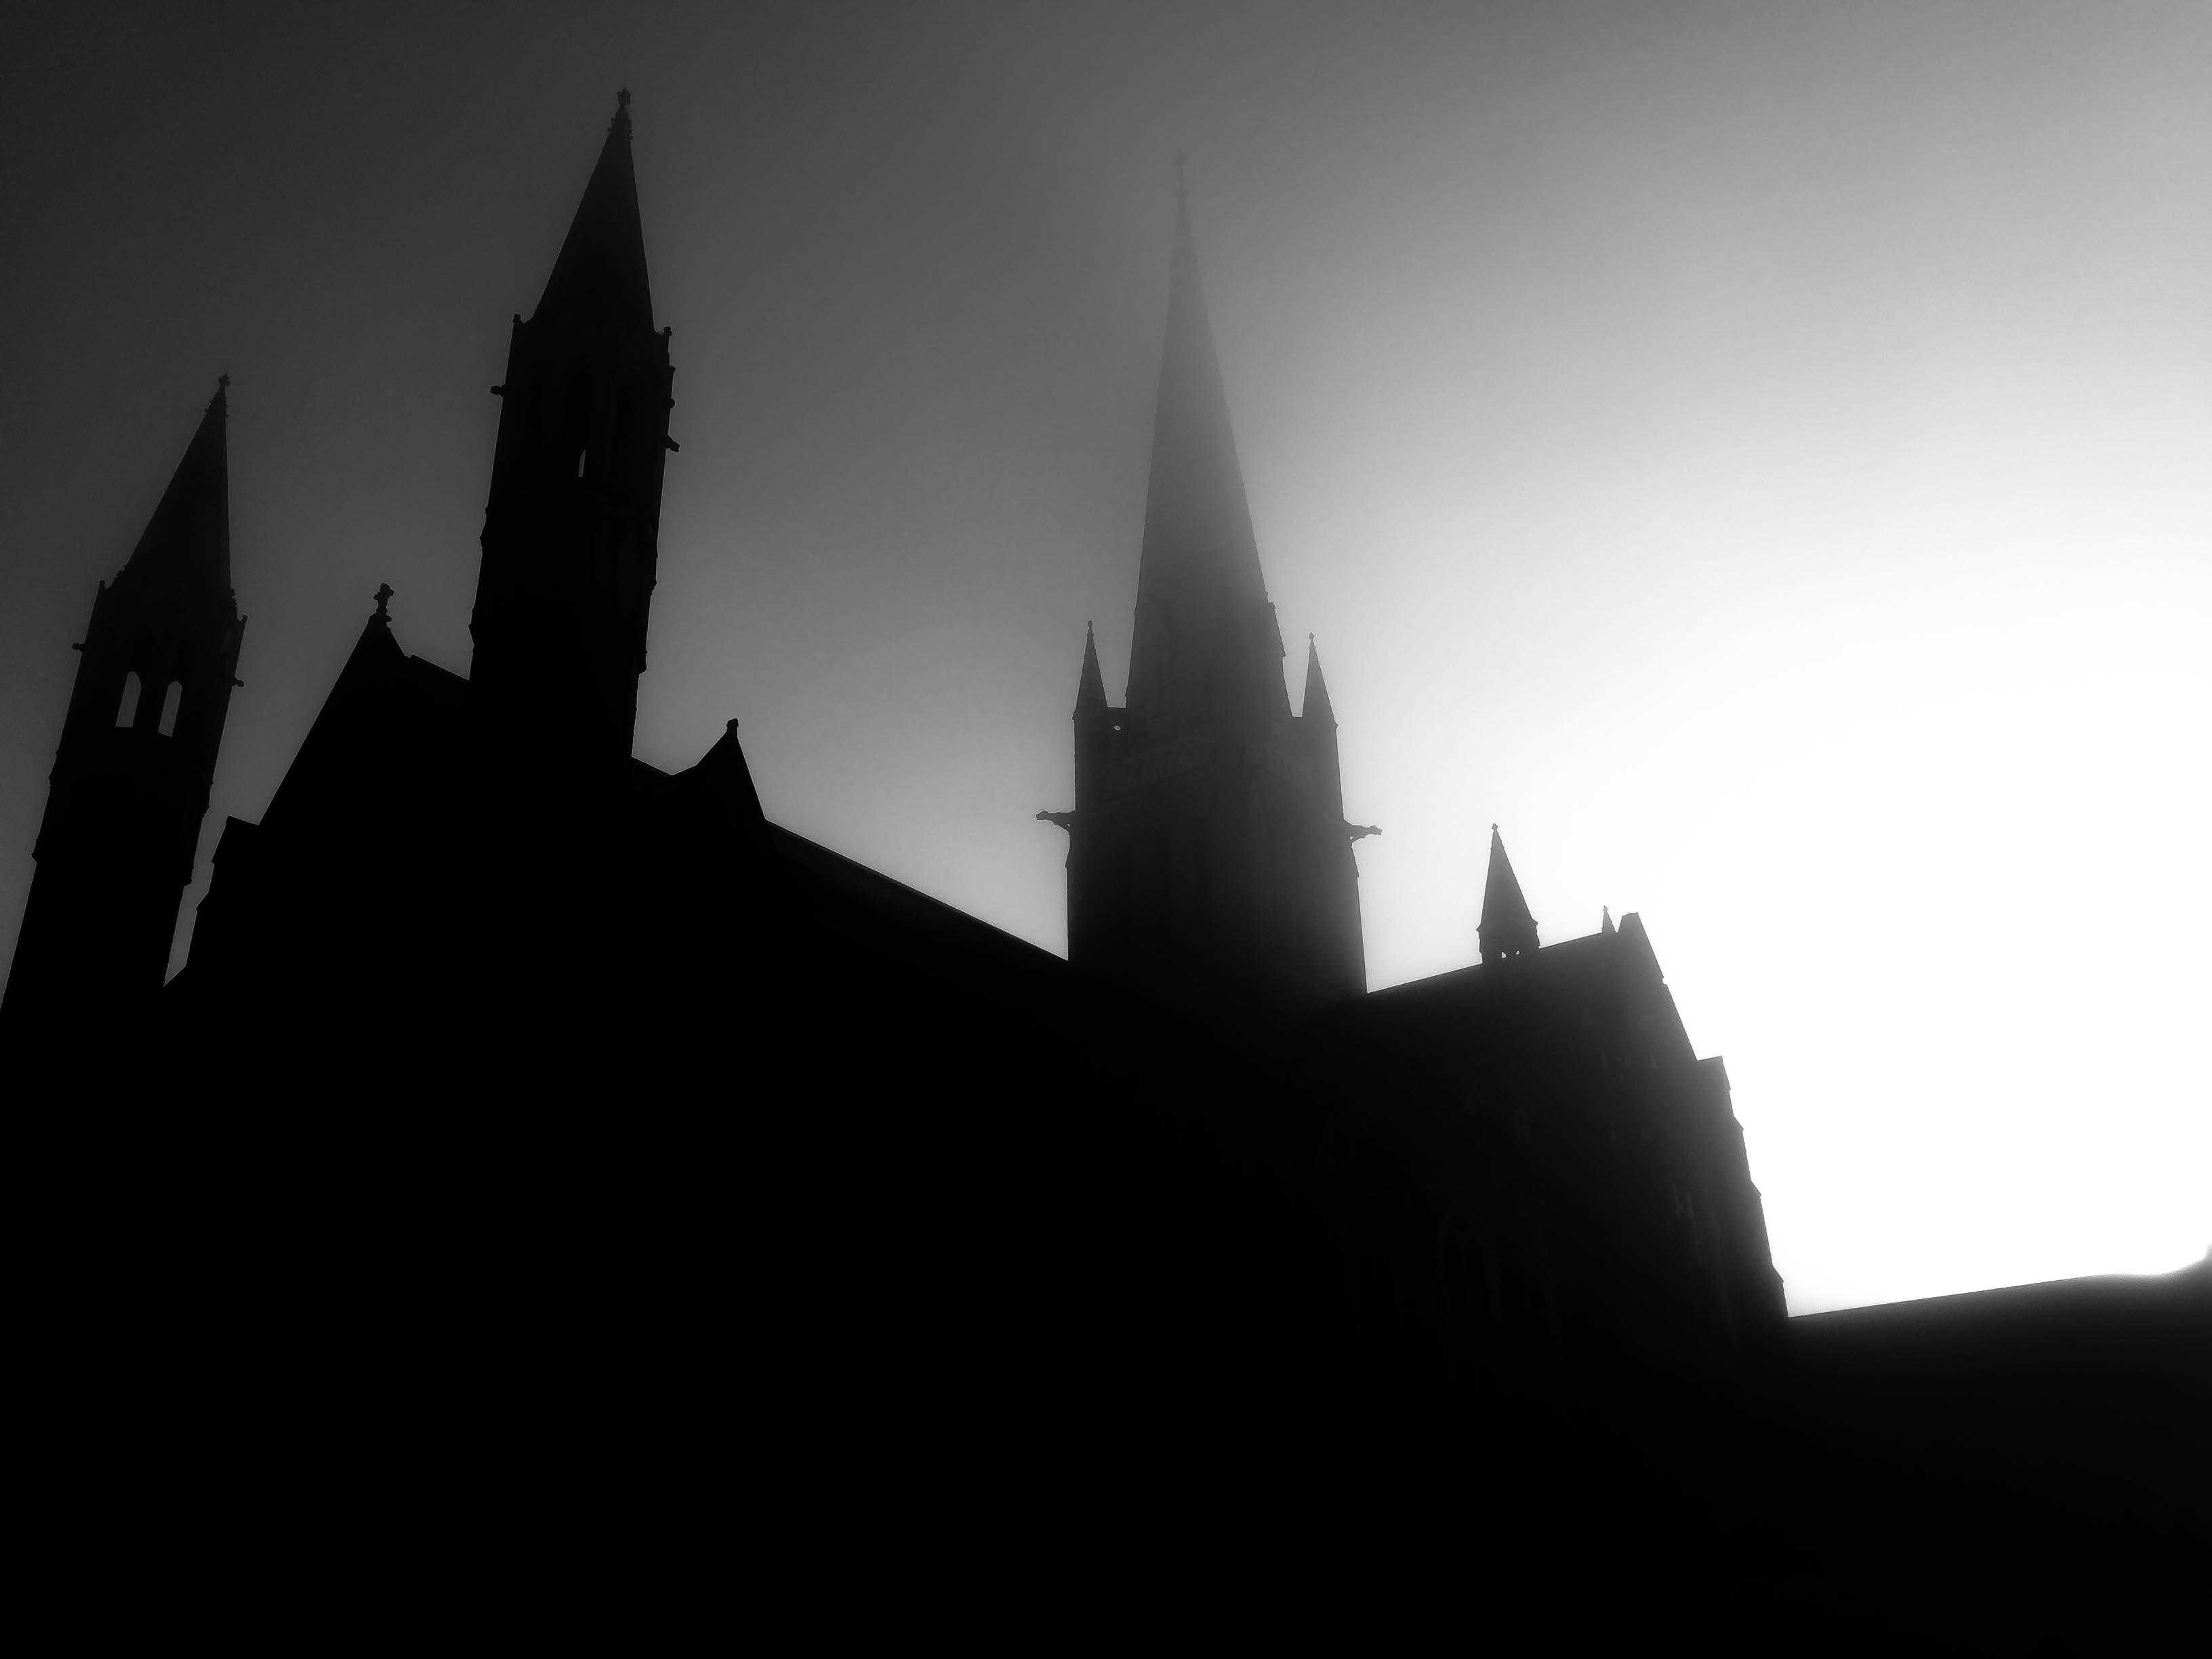 A silhouette of a castle like building with a gray and white sky.